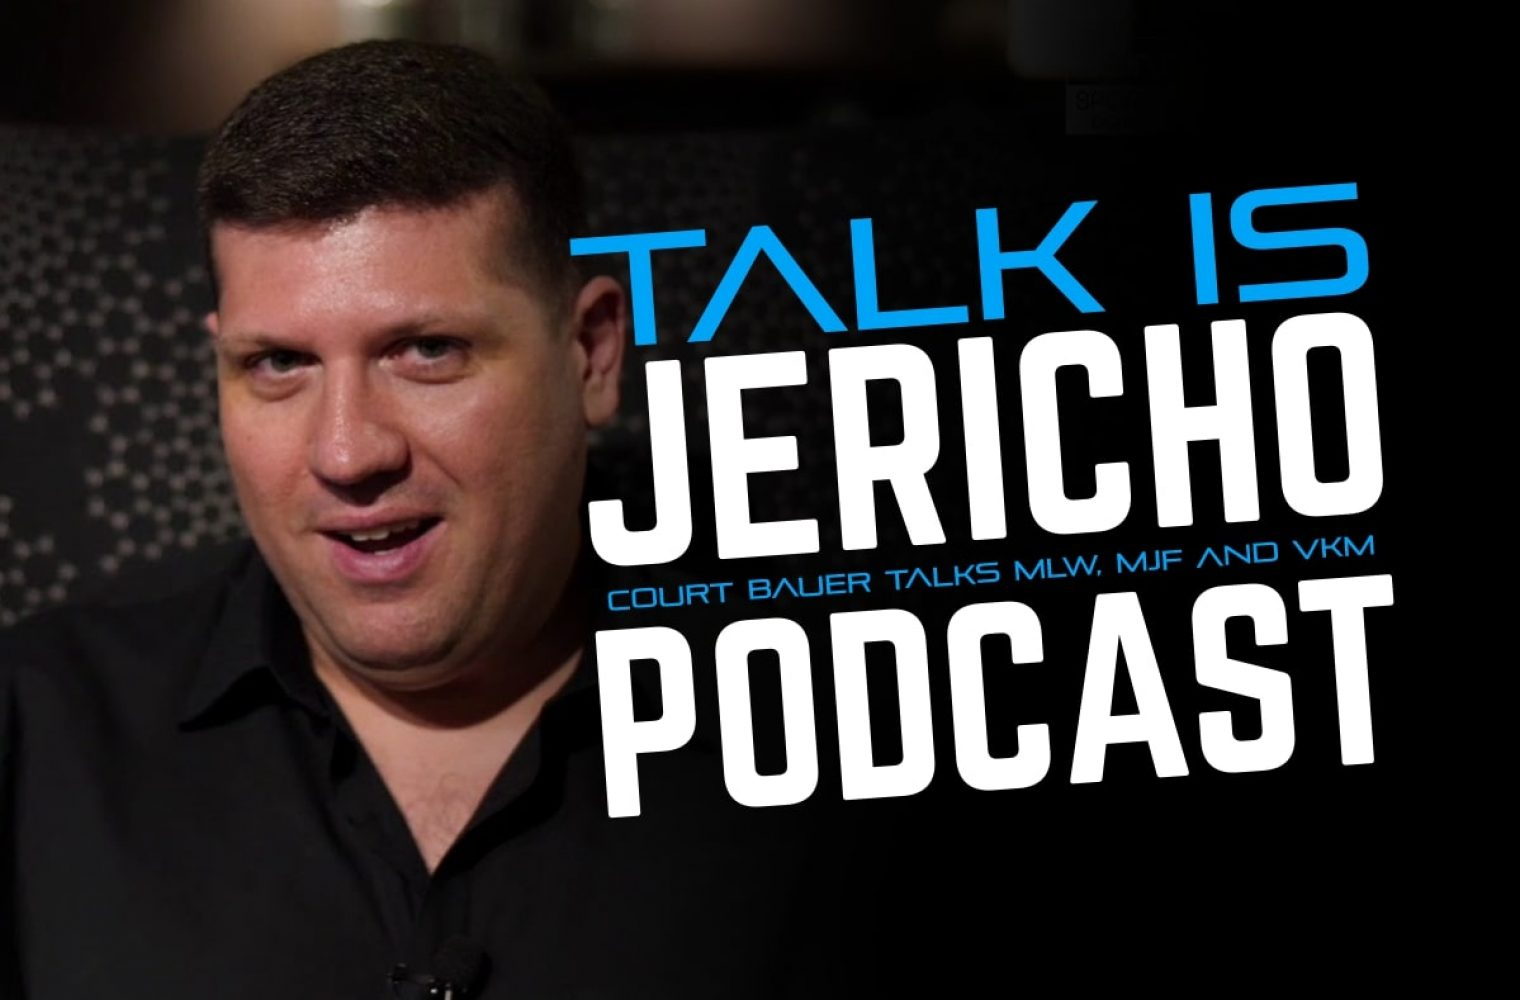 Talk Is Jericho: Court Bauer Talks MLW, MJF And VKM